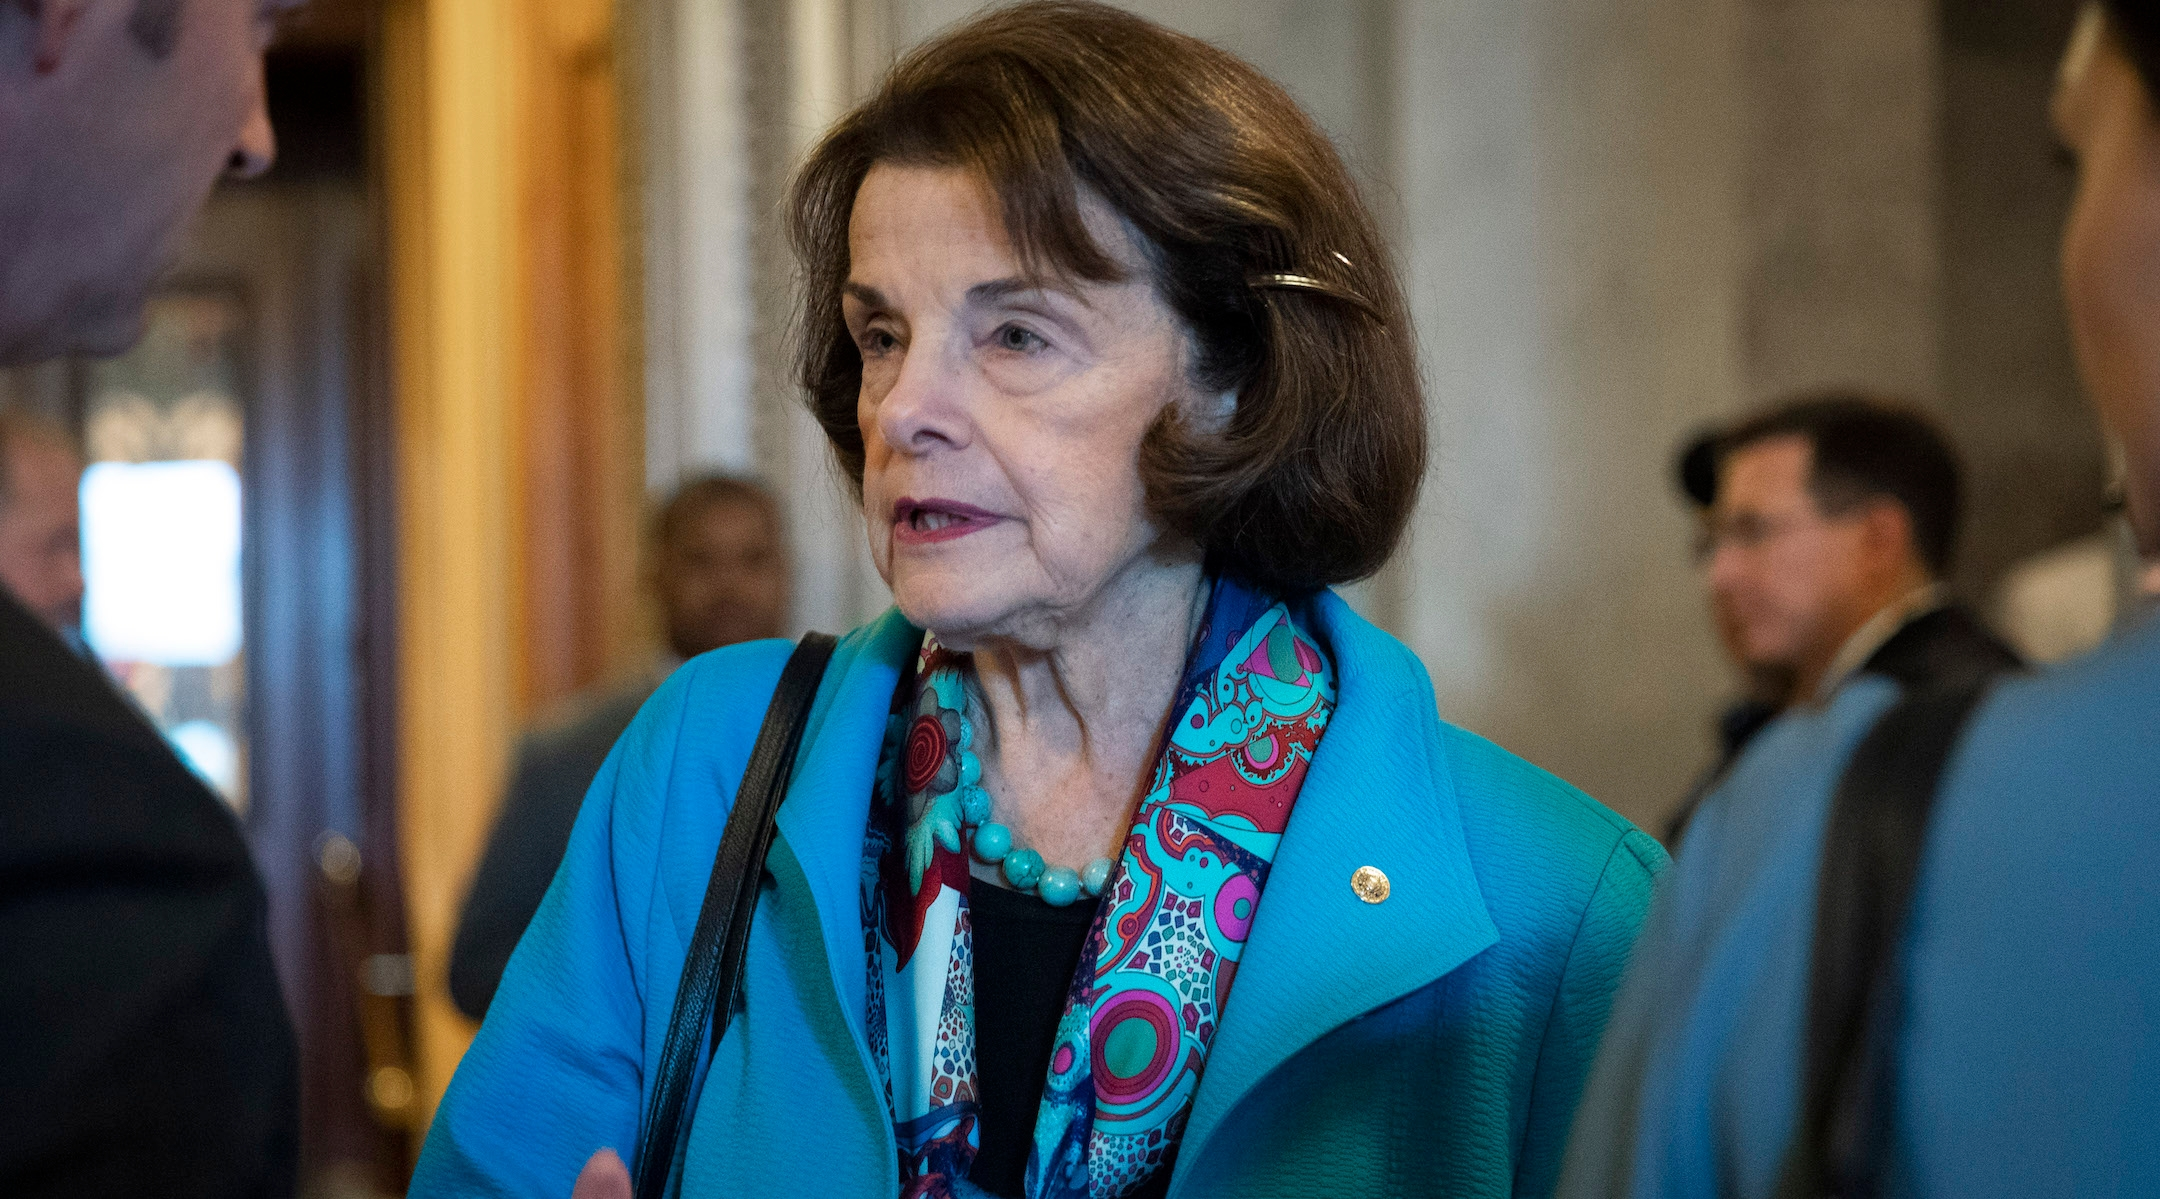 Dianne Feinstein will step down as top Democrat on Senate Judiciary Committee